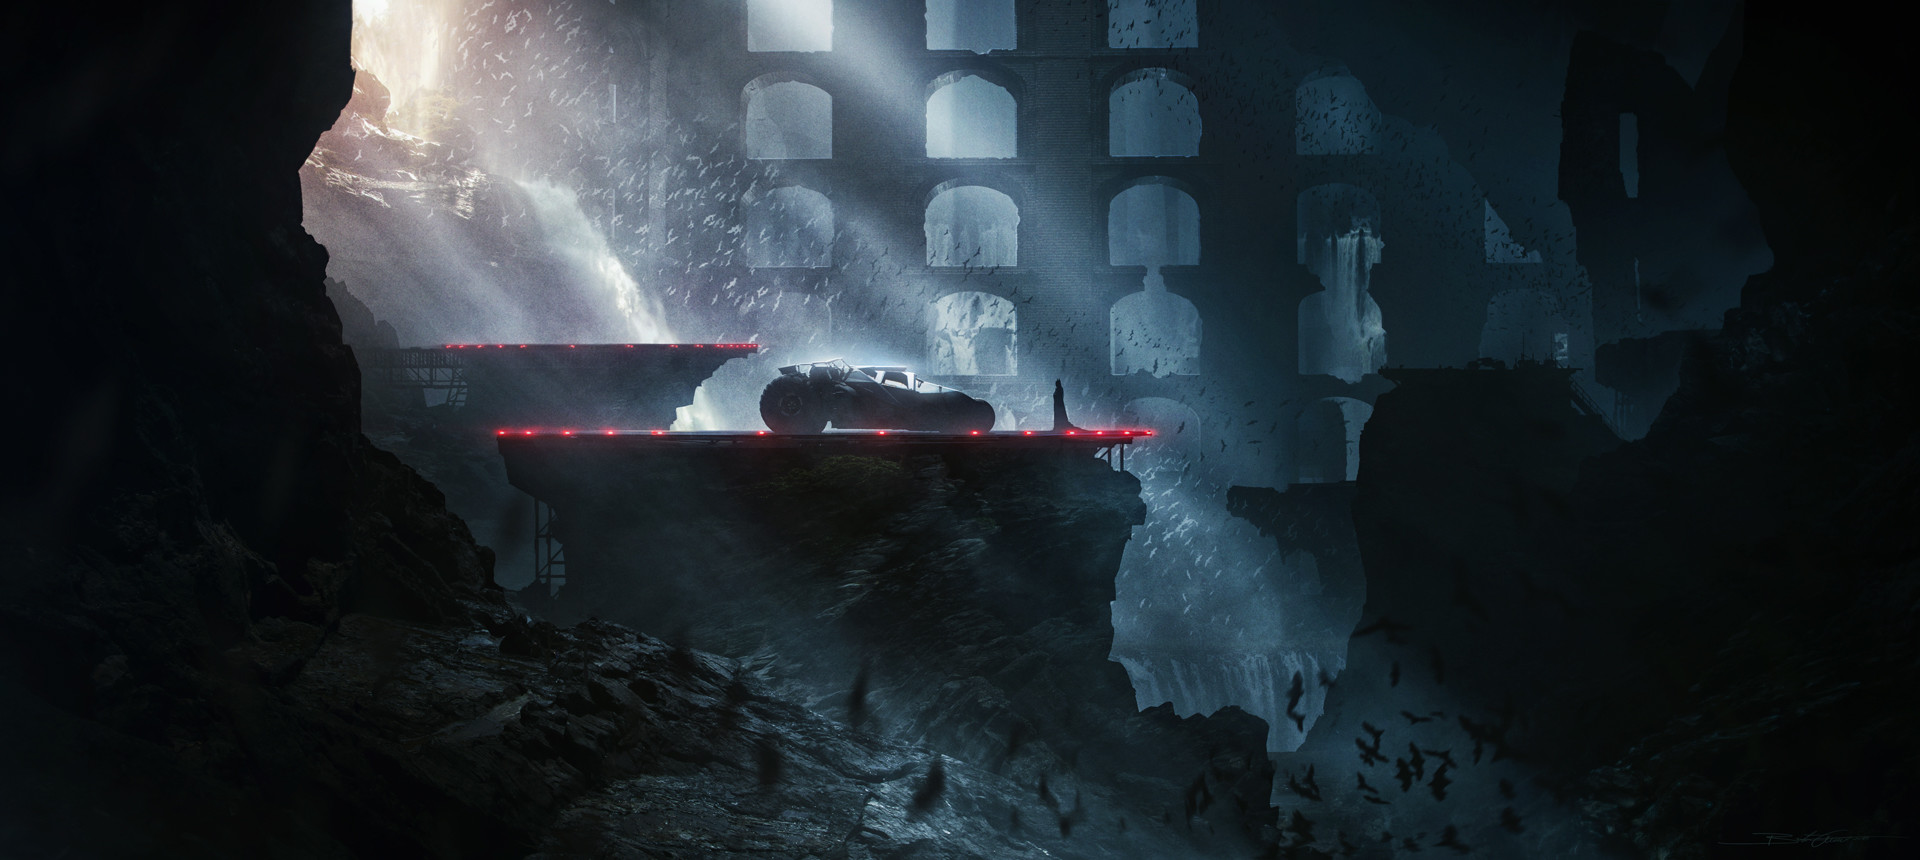 Bastien grivet does it come in black bastien grivet concept art batman